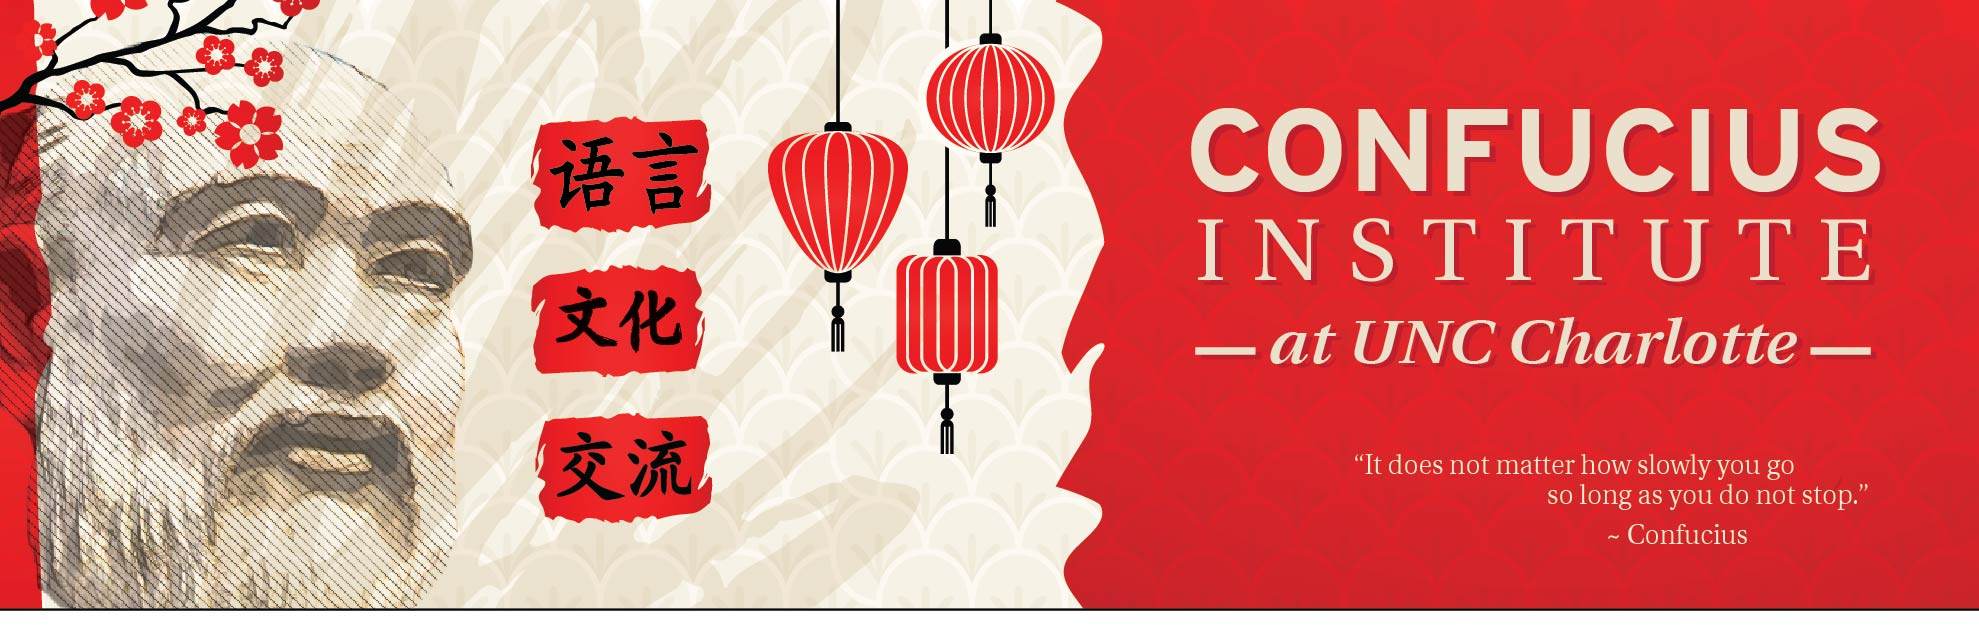 Confucius Institute graphic with Confucius